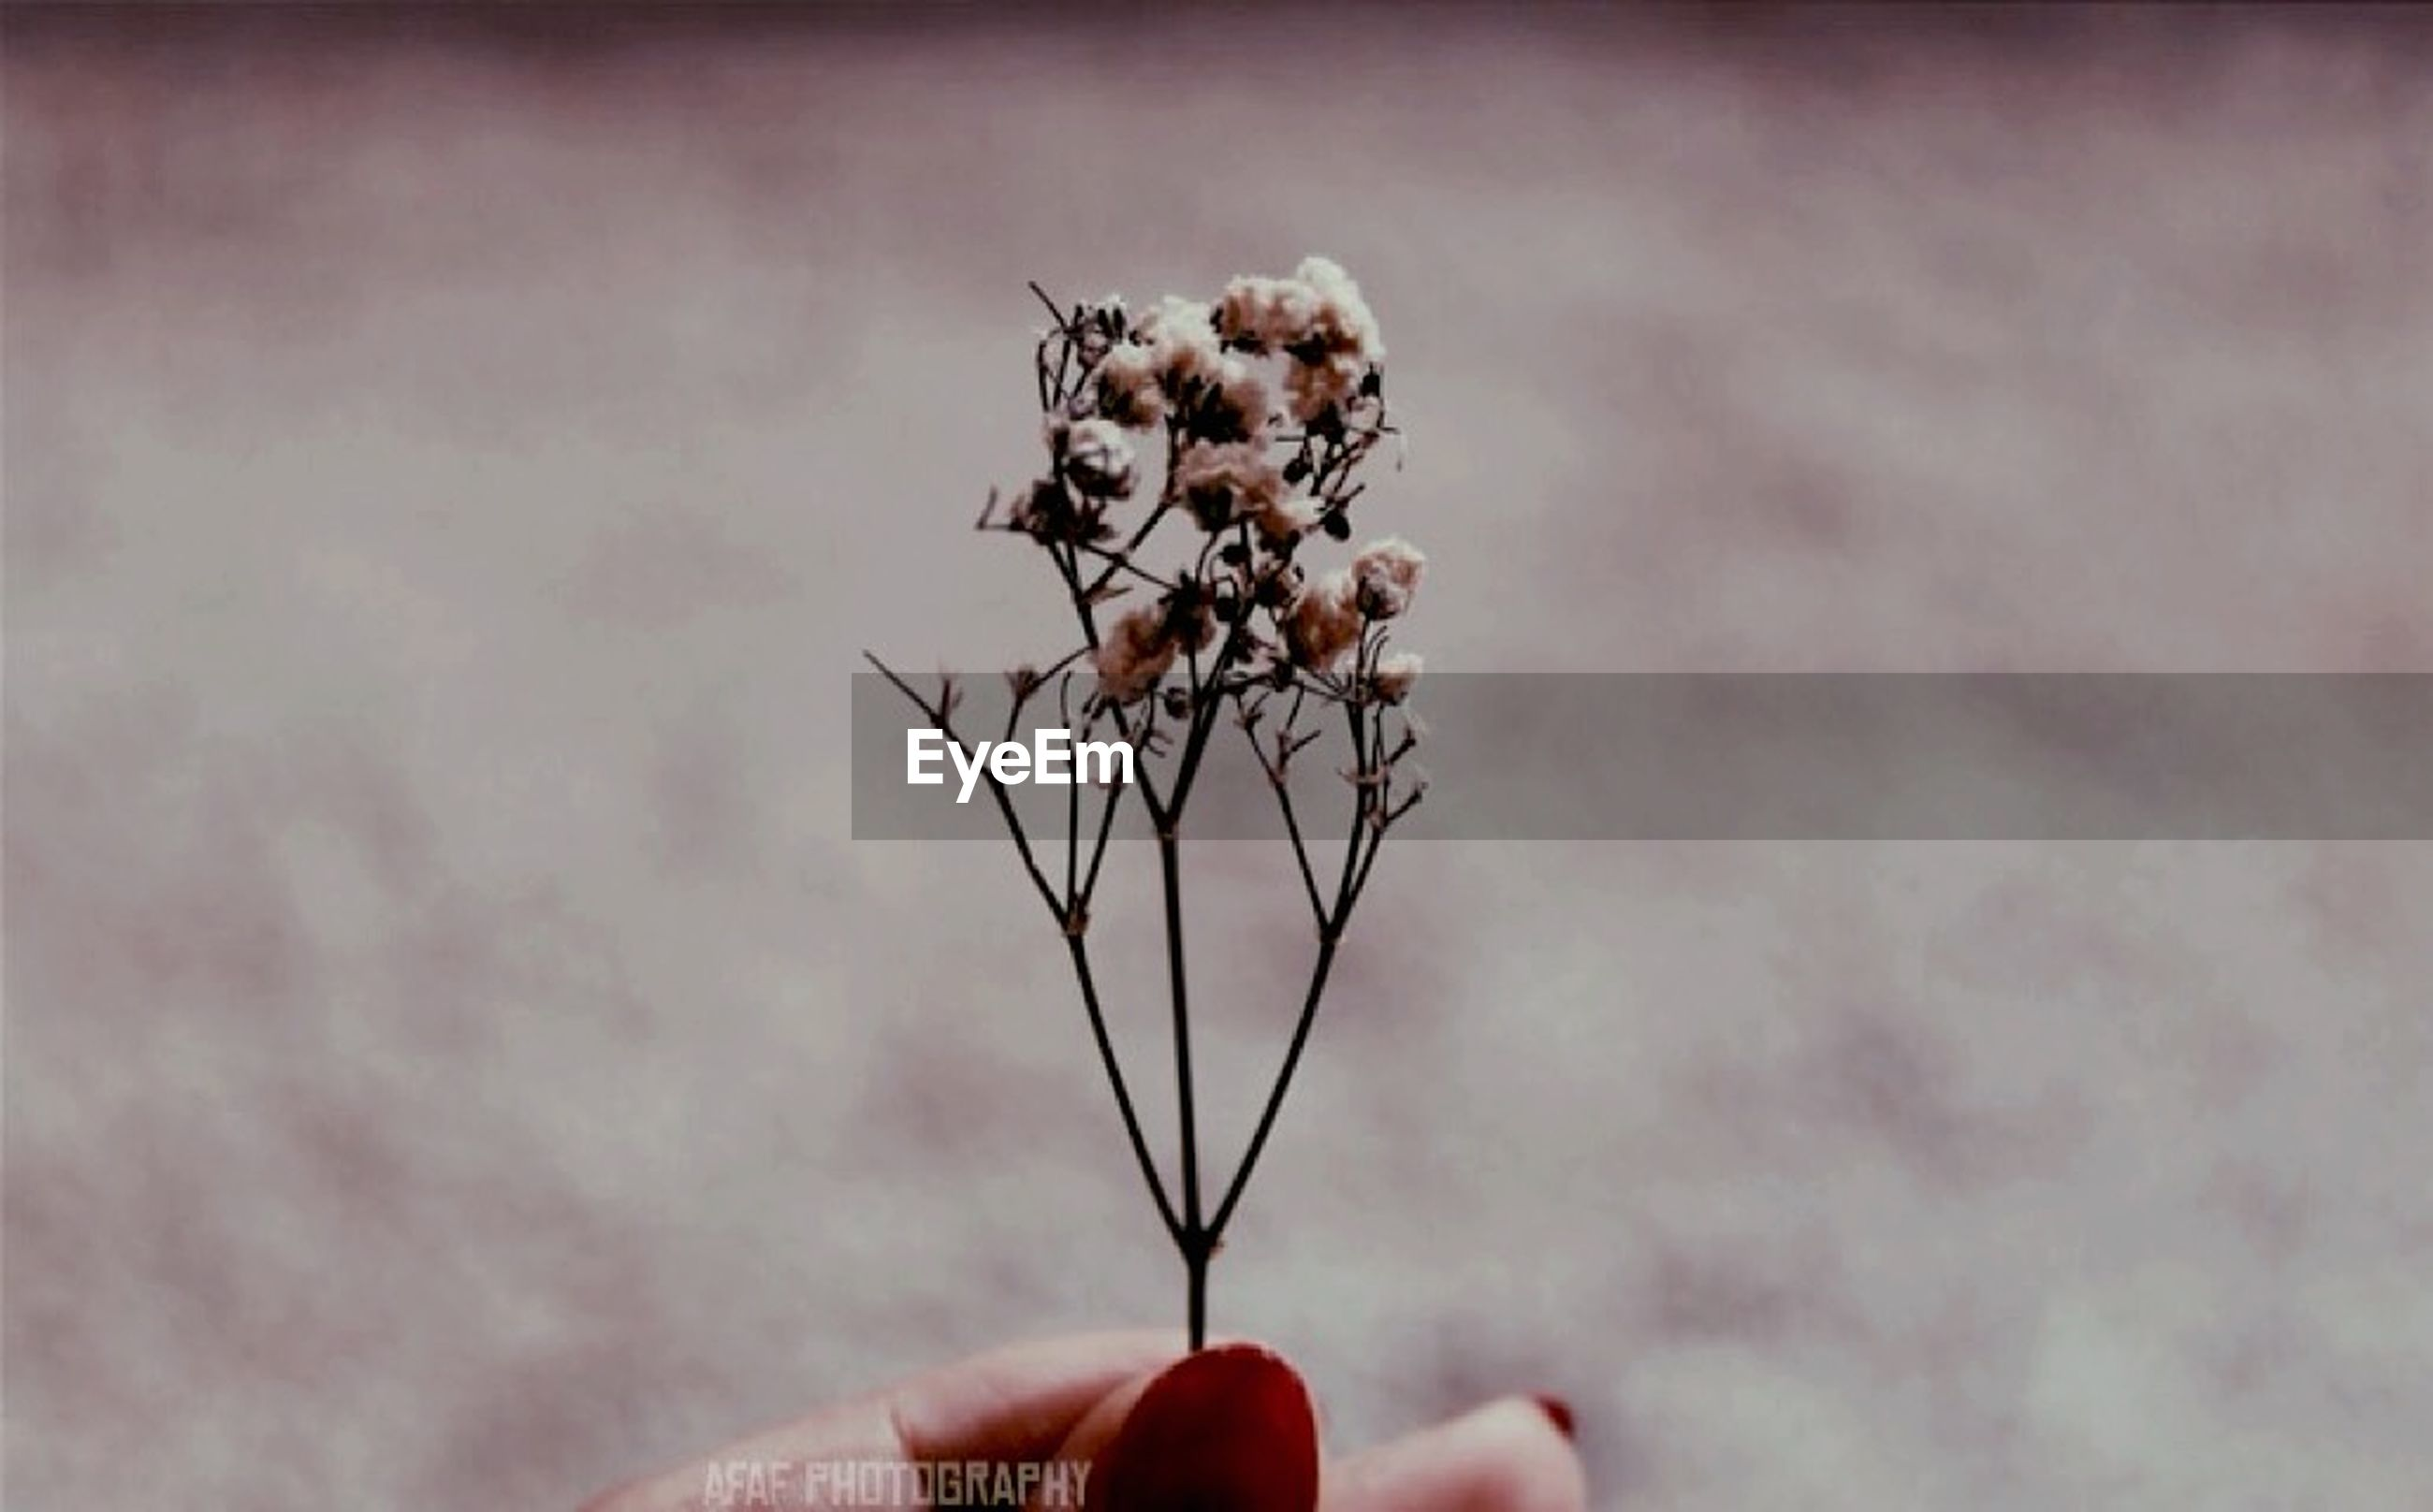 person, holding, part of, human finger, cropped, unrecognizable person, one animal, animal themes, close-up, flower, focus on foreground, personal perspective, stem, dry, insect, nature, sky